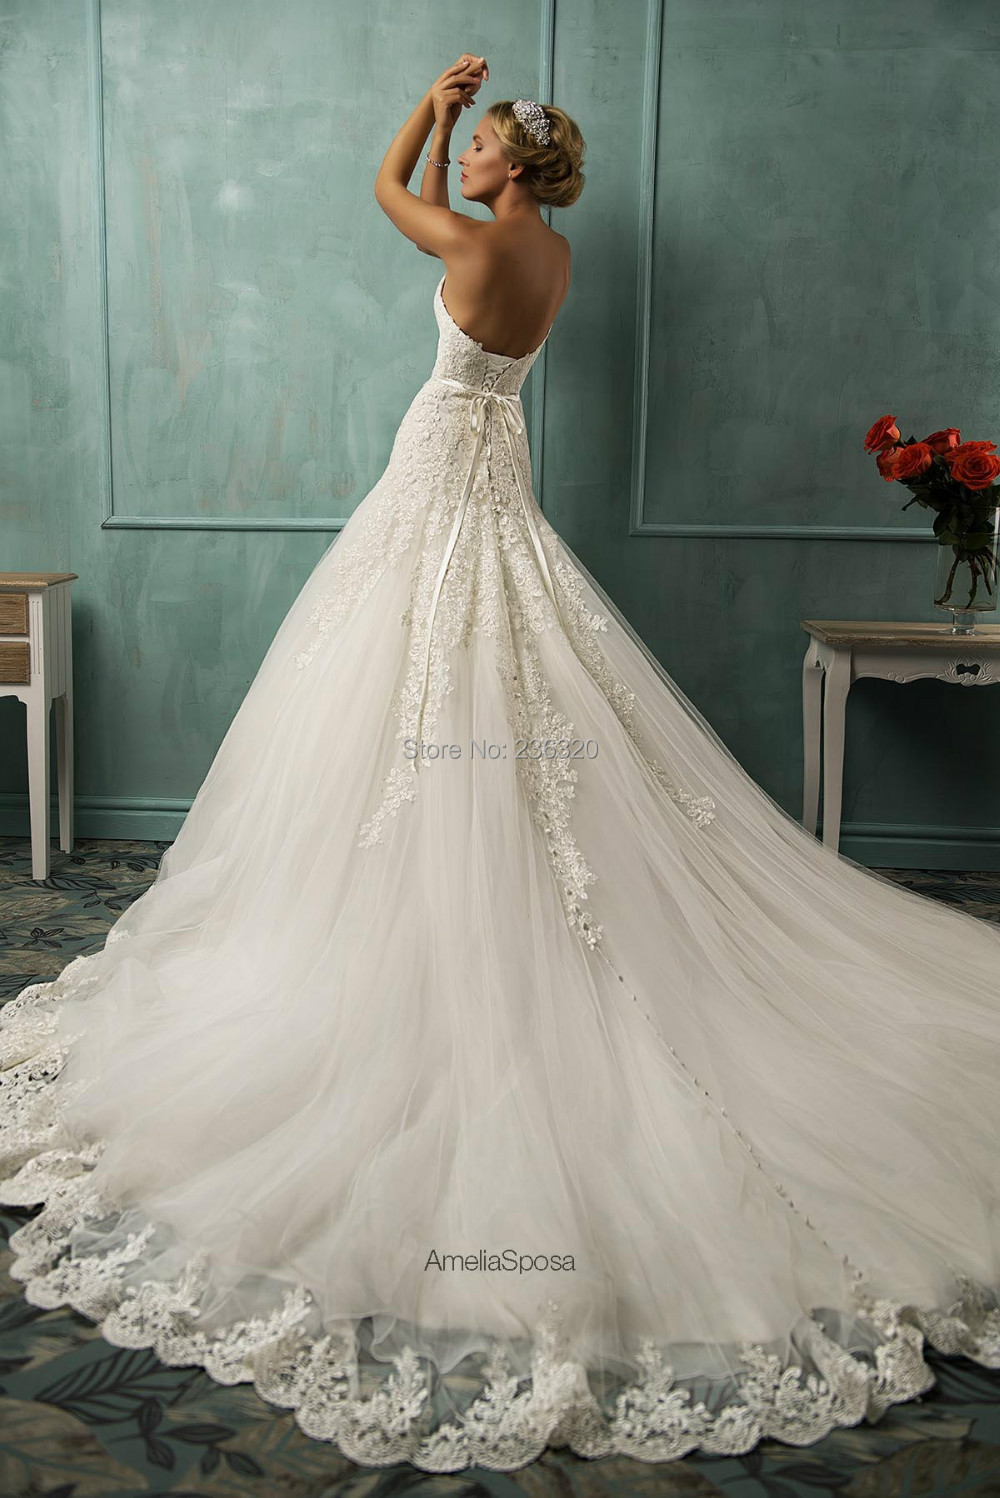 Vestido de noiva 2015 fashion wedding dress sweetheart for Wedding dresses with lace up back